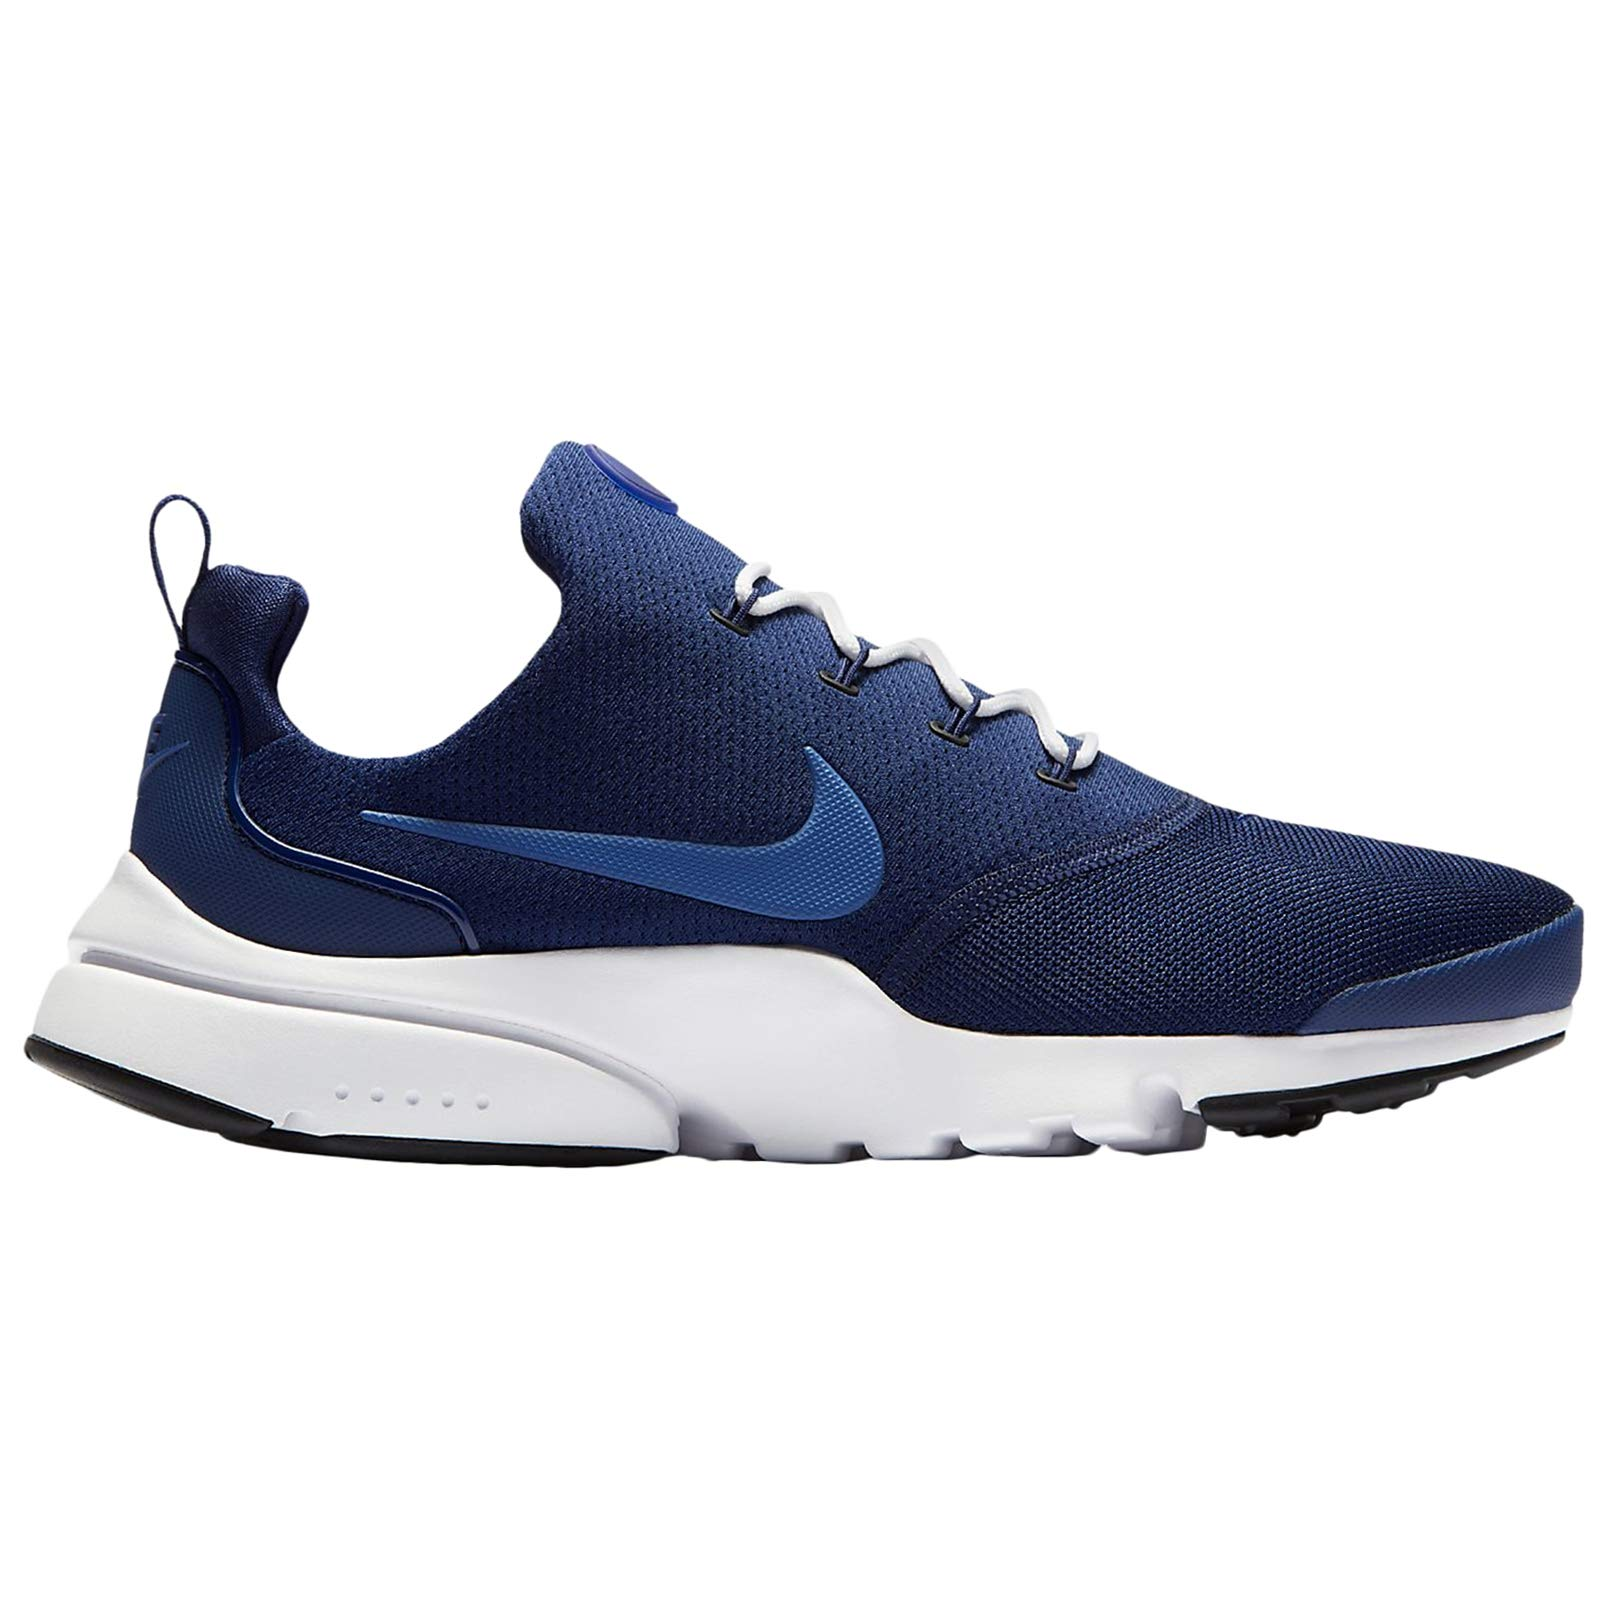 97d554e33034f Nike Mens Presto Fly Mesh Blue Void Game Royal Black Trainers 12 US